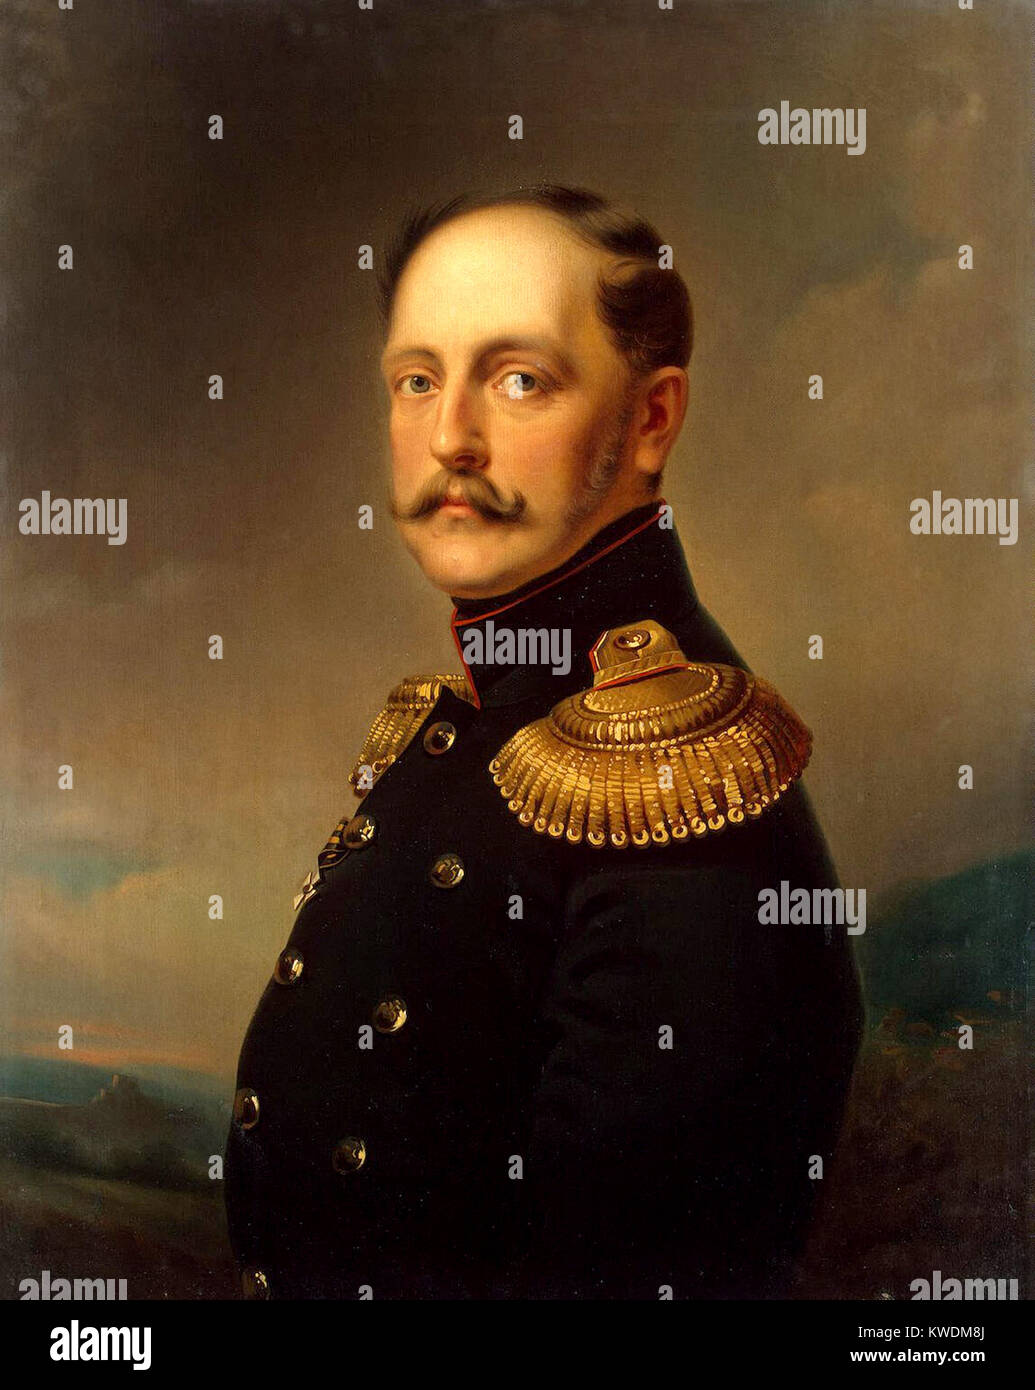 Nicholas I Of Russia Stock Photos and Images